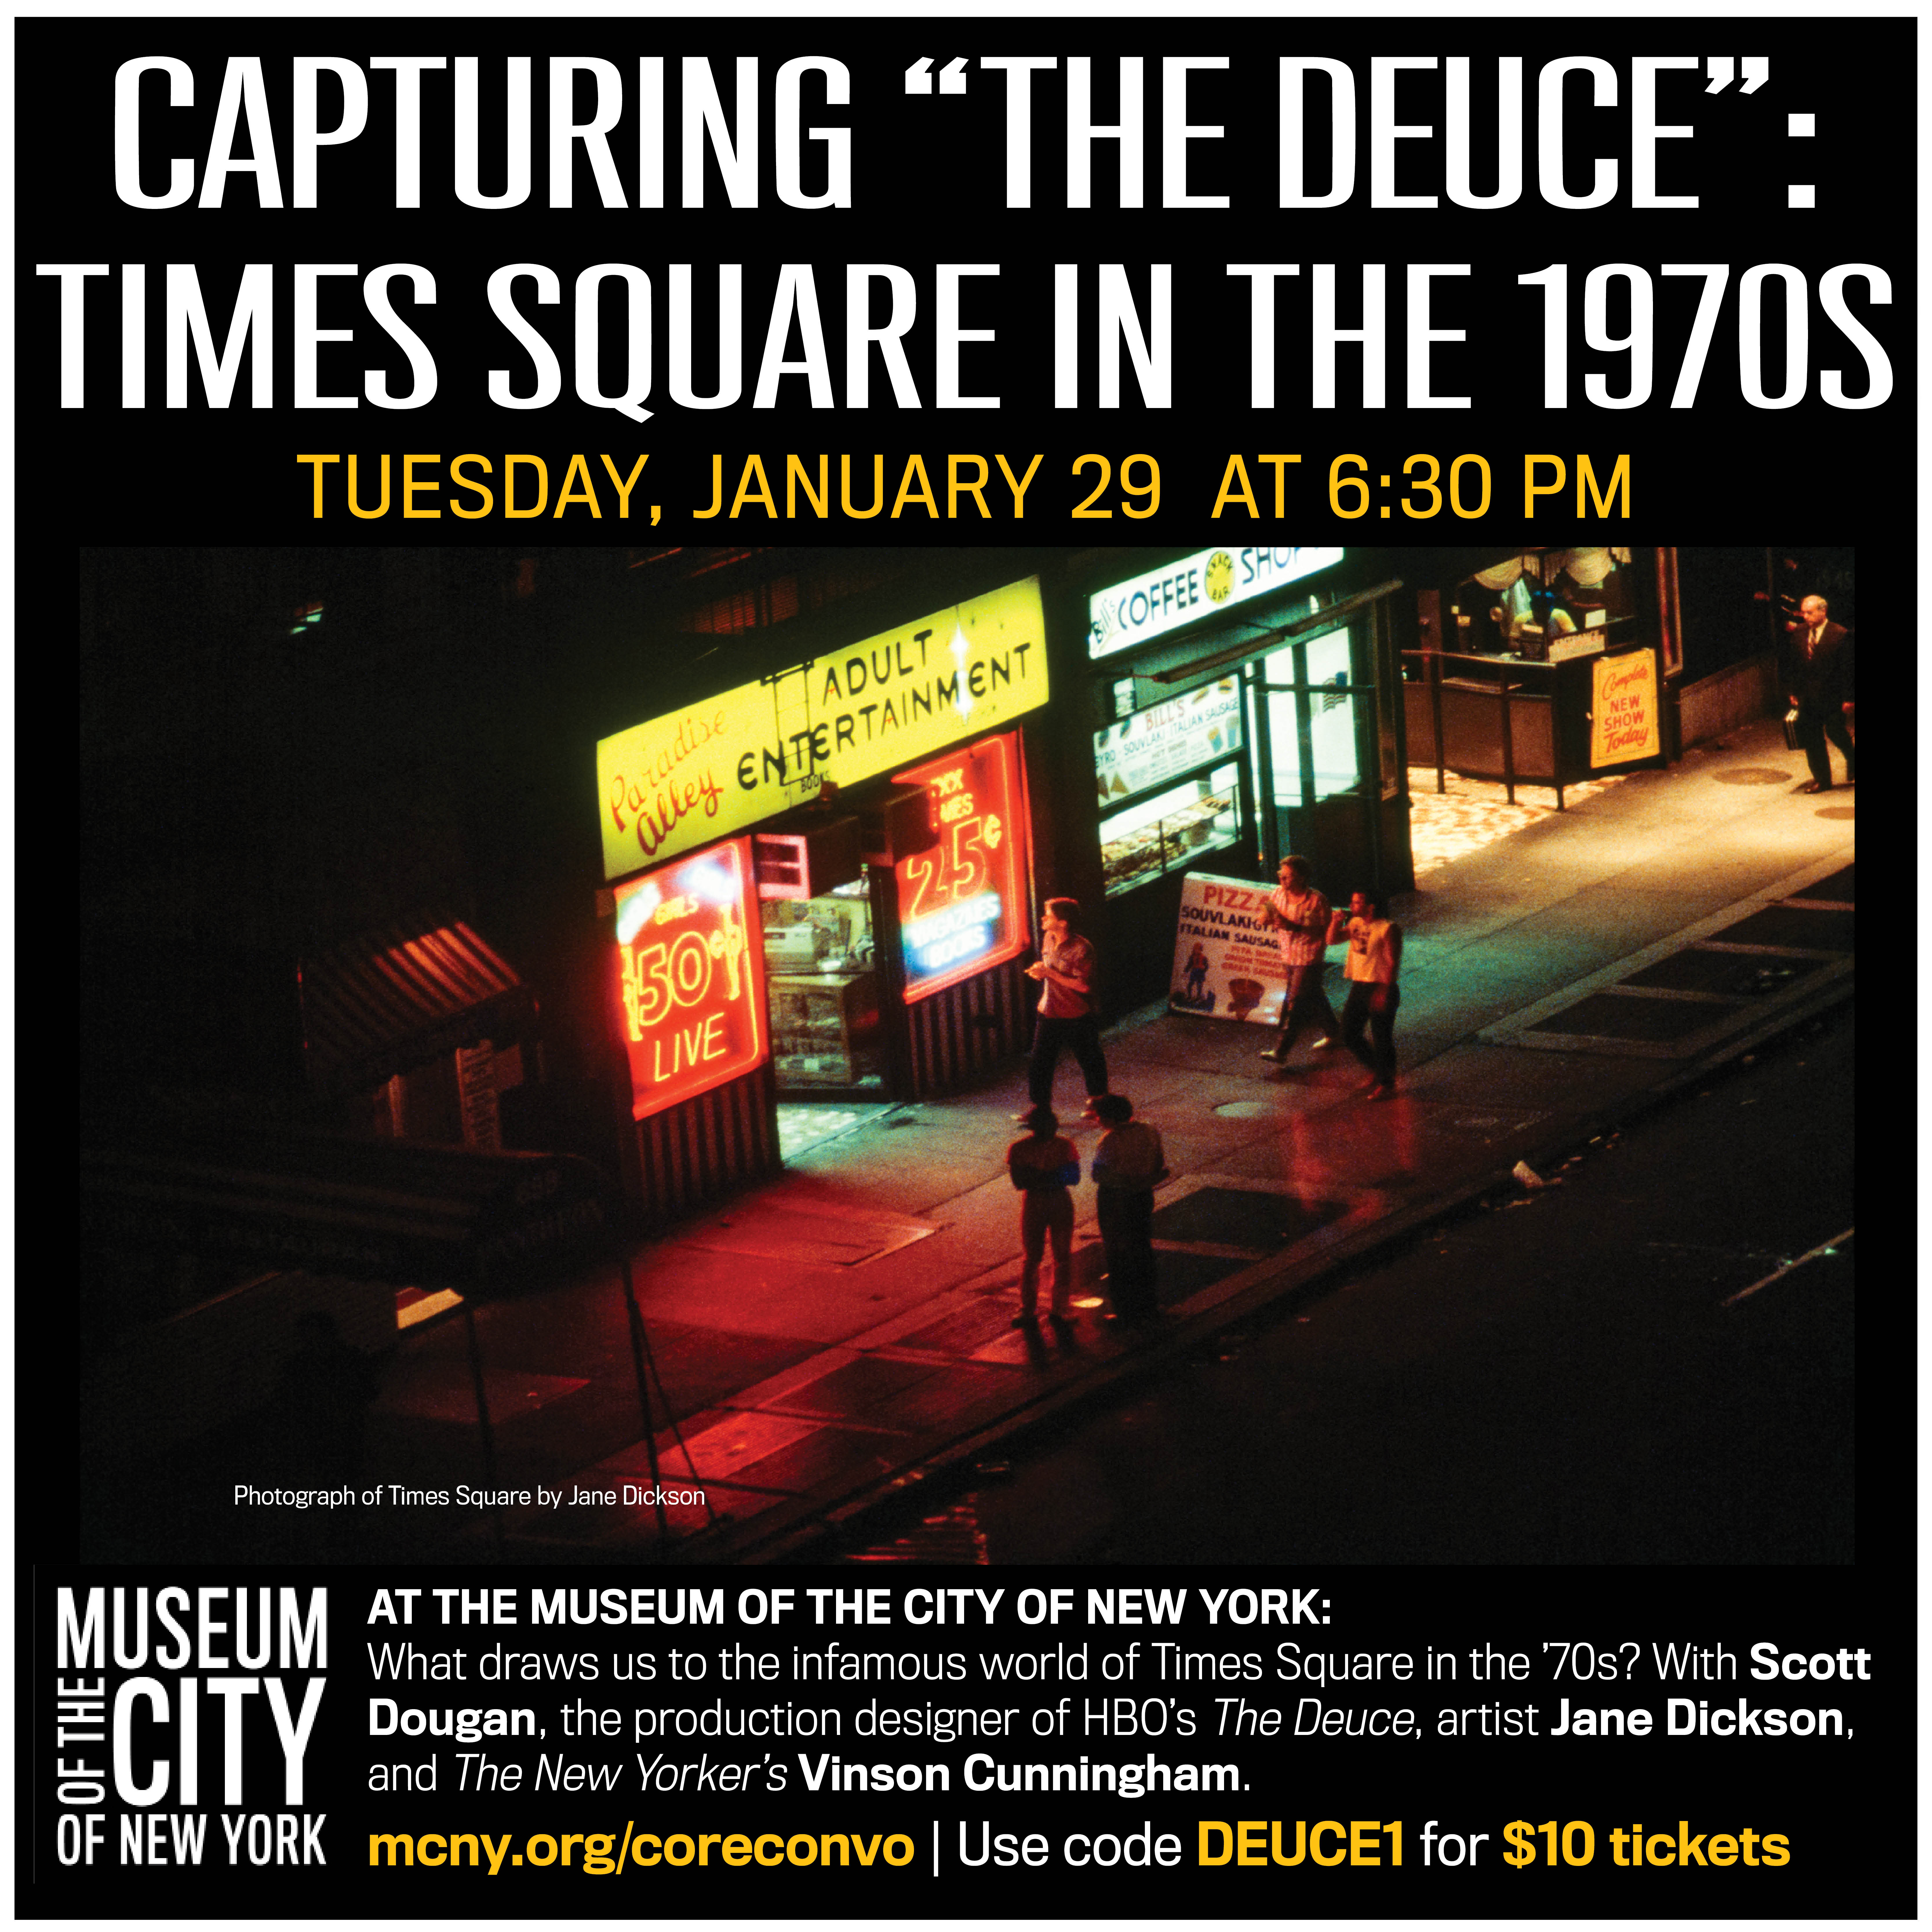 Jane Dickson in Times Square - Museum of the City of New York Event Image